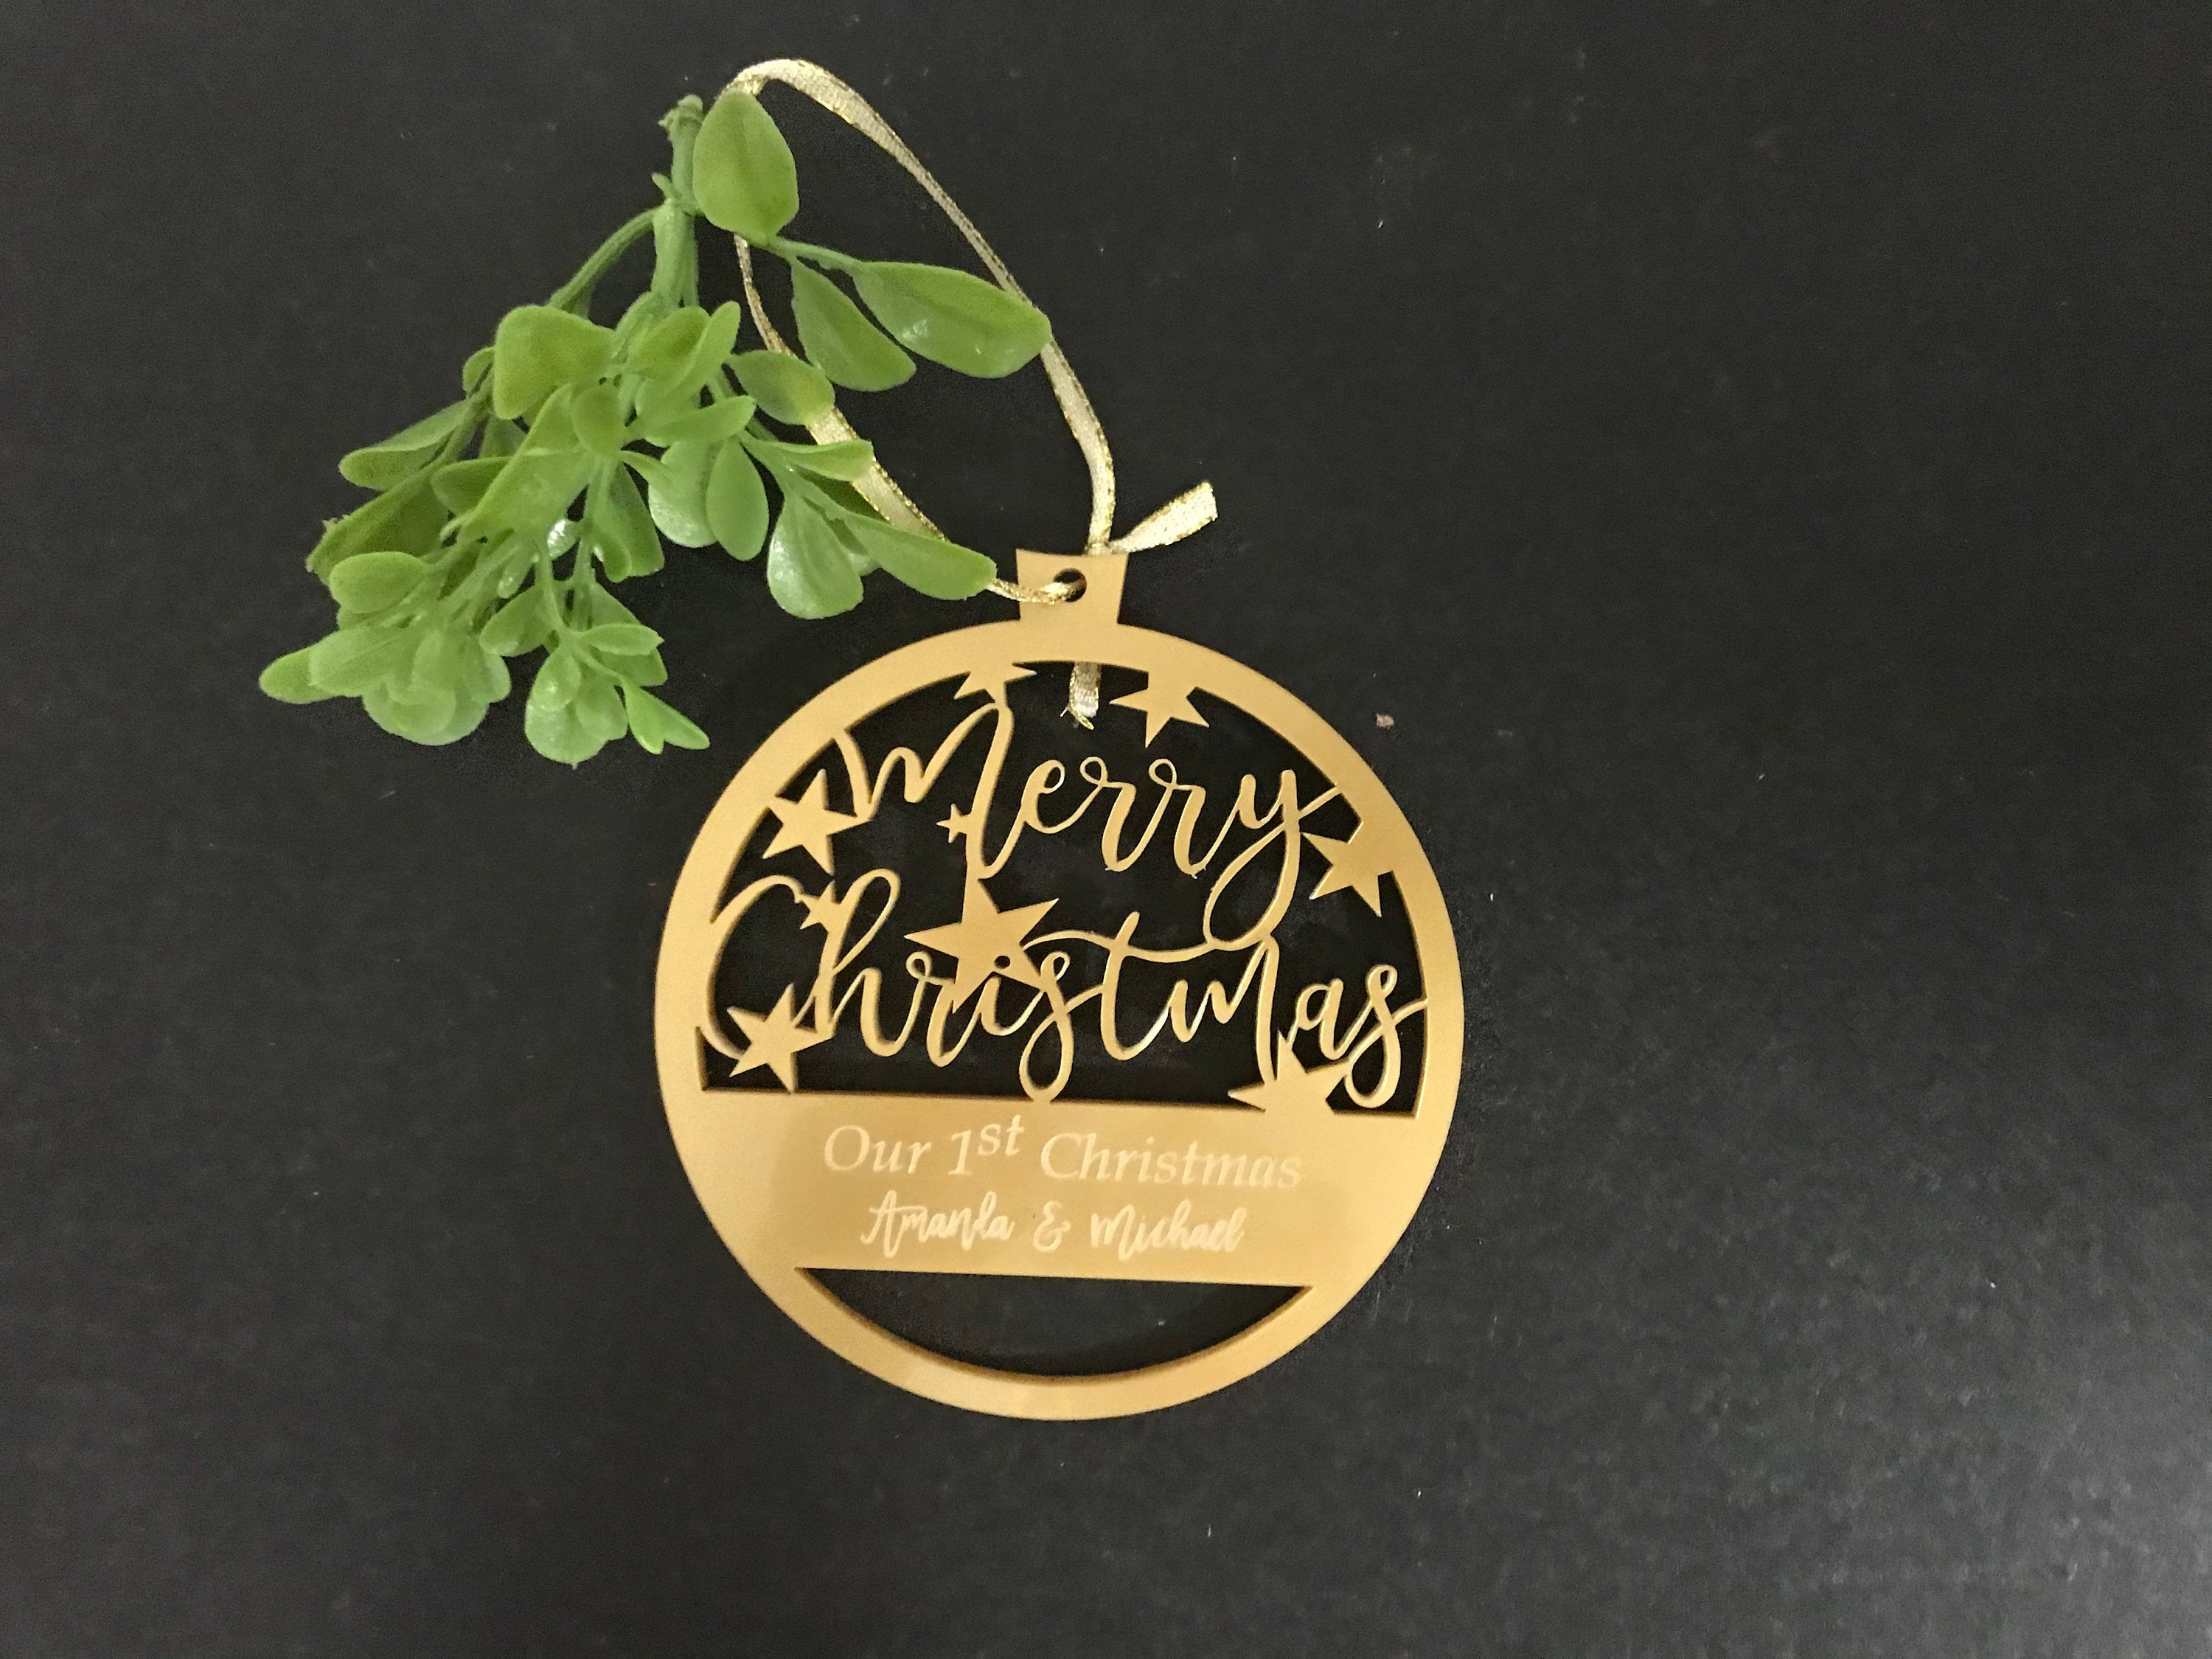 Laser Cut Acrylic Christmas Tree Personalized Ornament